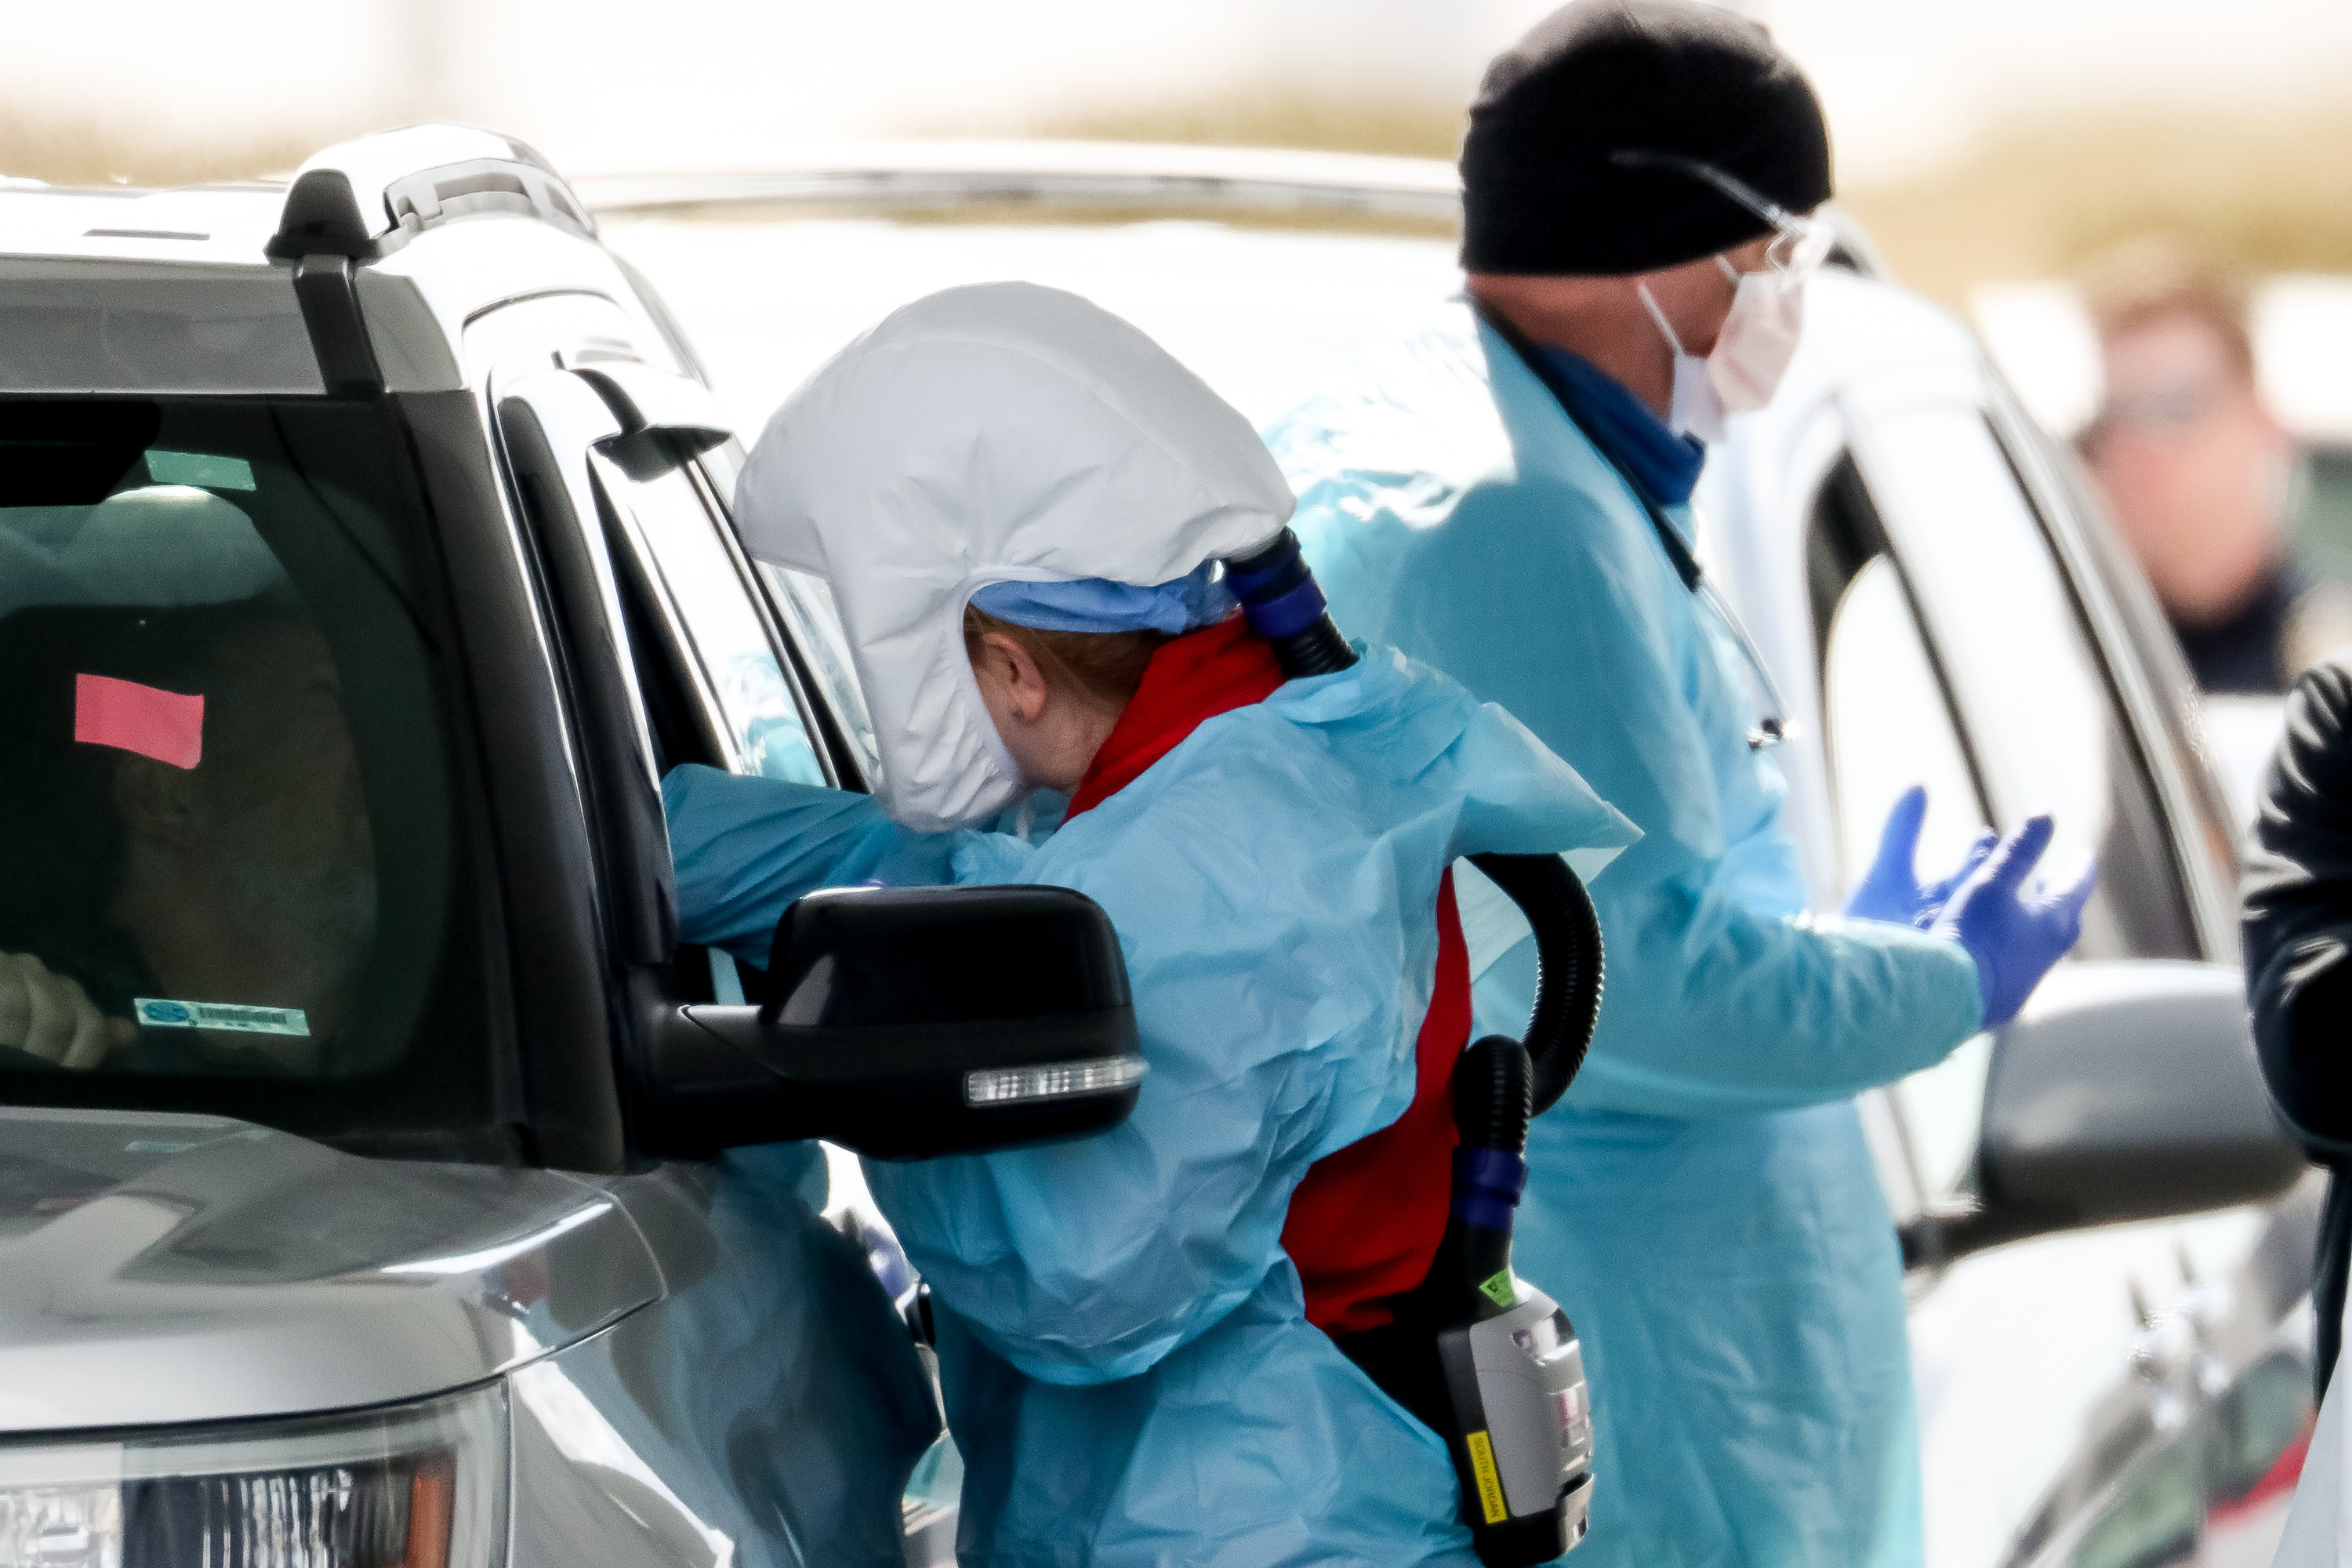 Medical workers provide drive-thru COVID-19 testing at University of Utah Health's South Jordan Health Center in South Jordan on Friday, March 27, 2020.